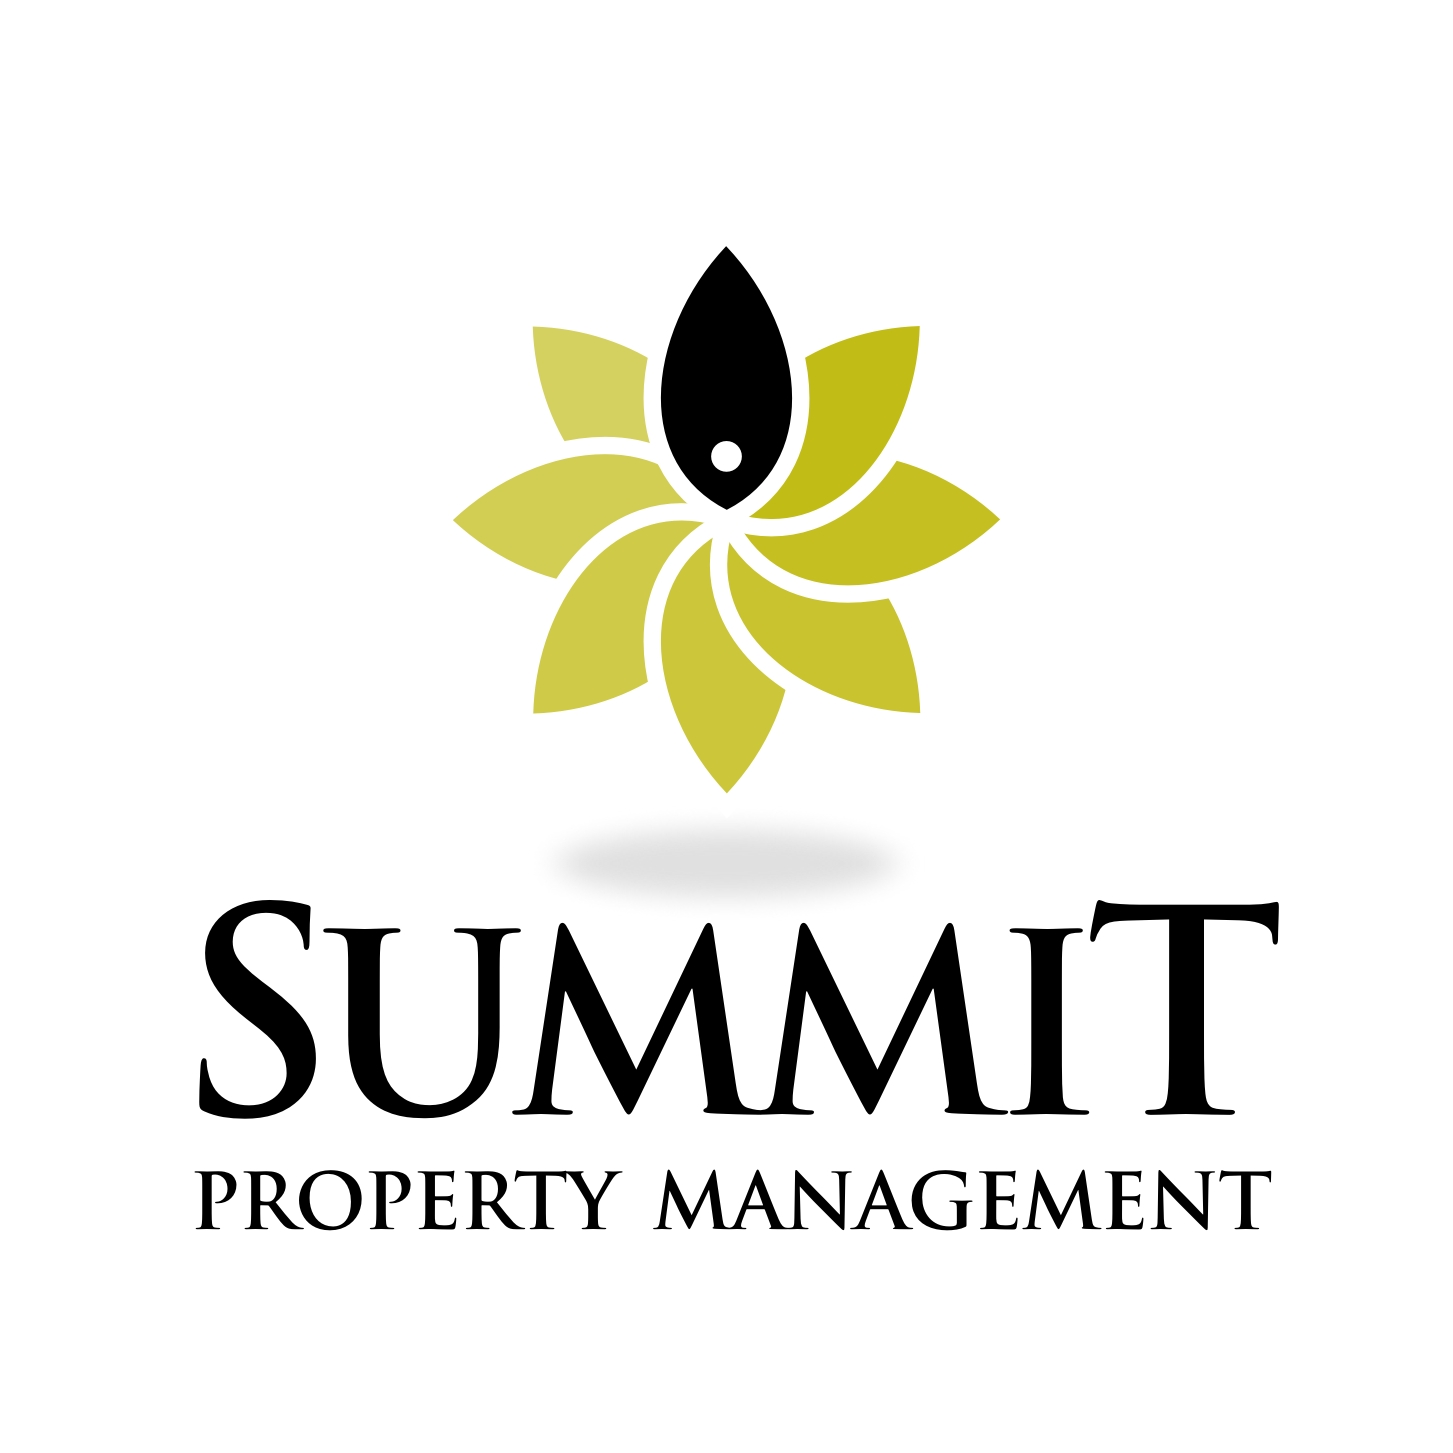 Summit Property Management_vert.jpg